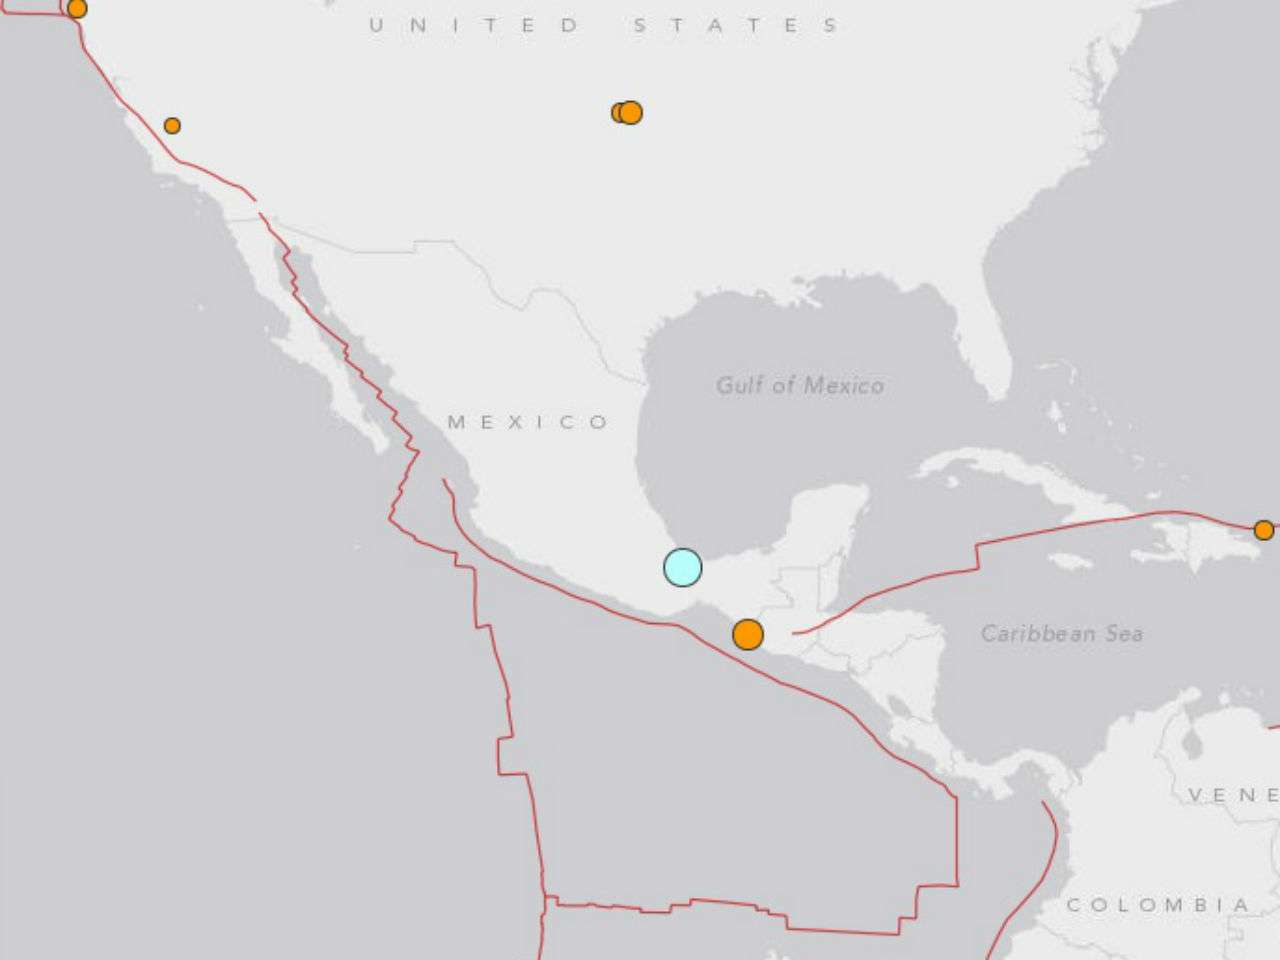 http://earthquake.usgs.gov/